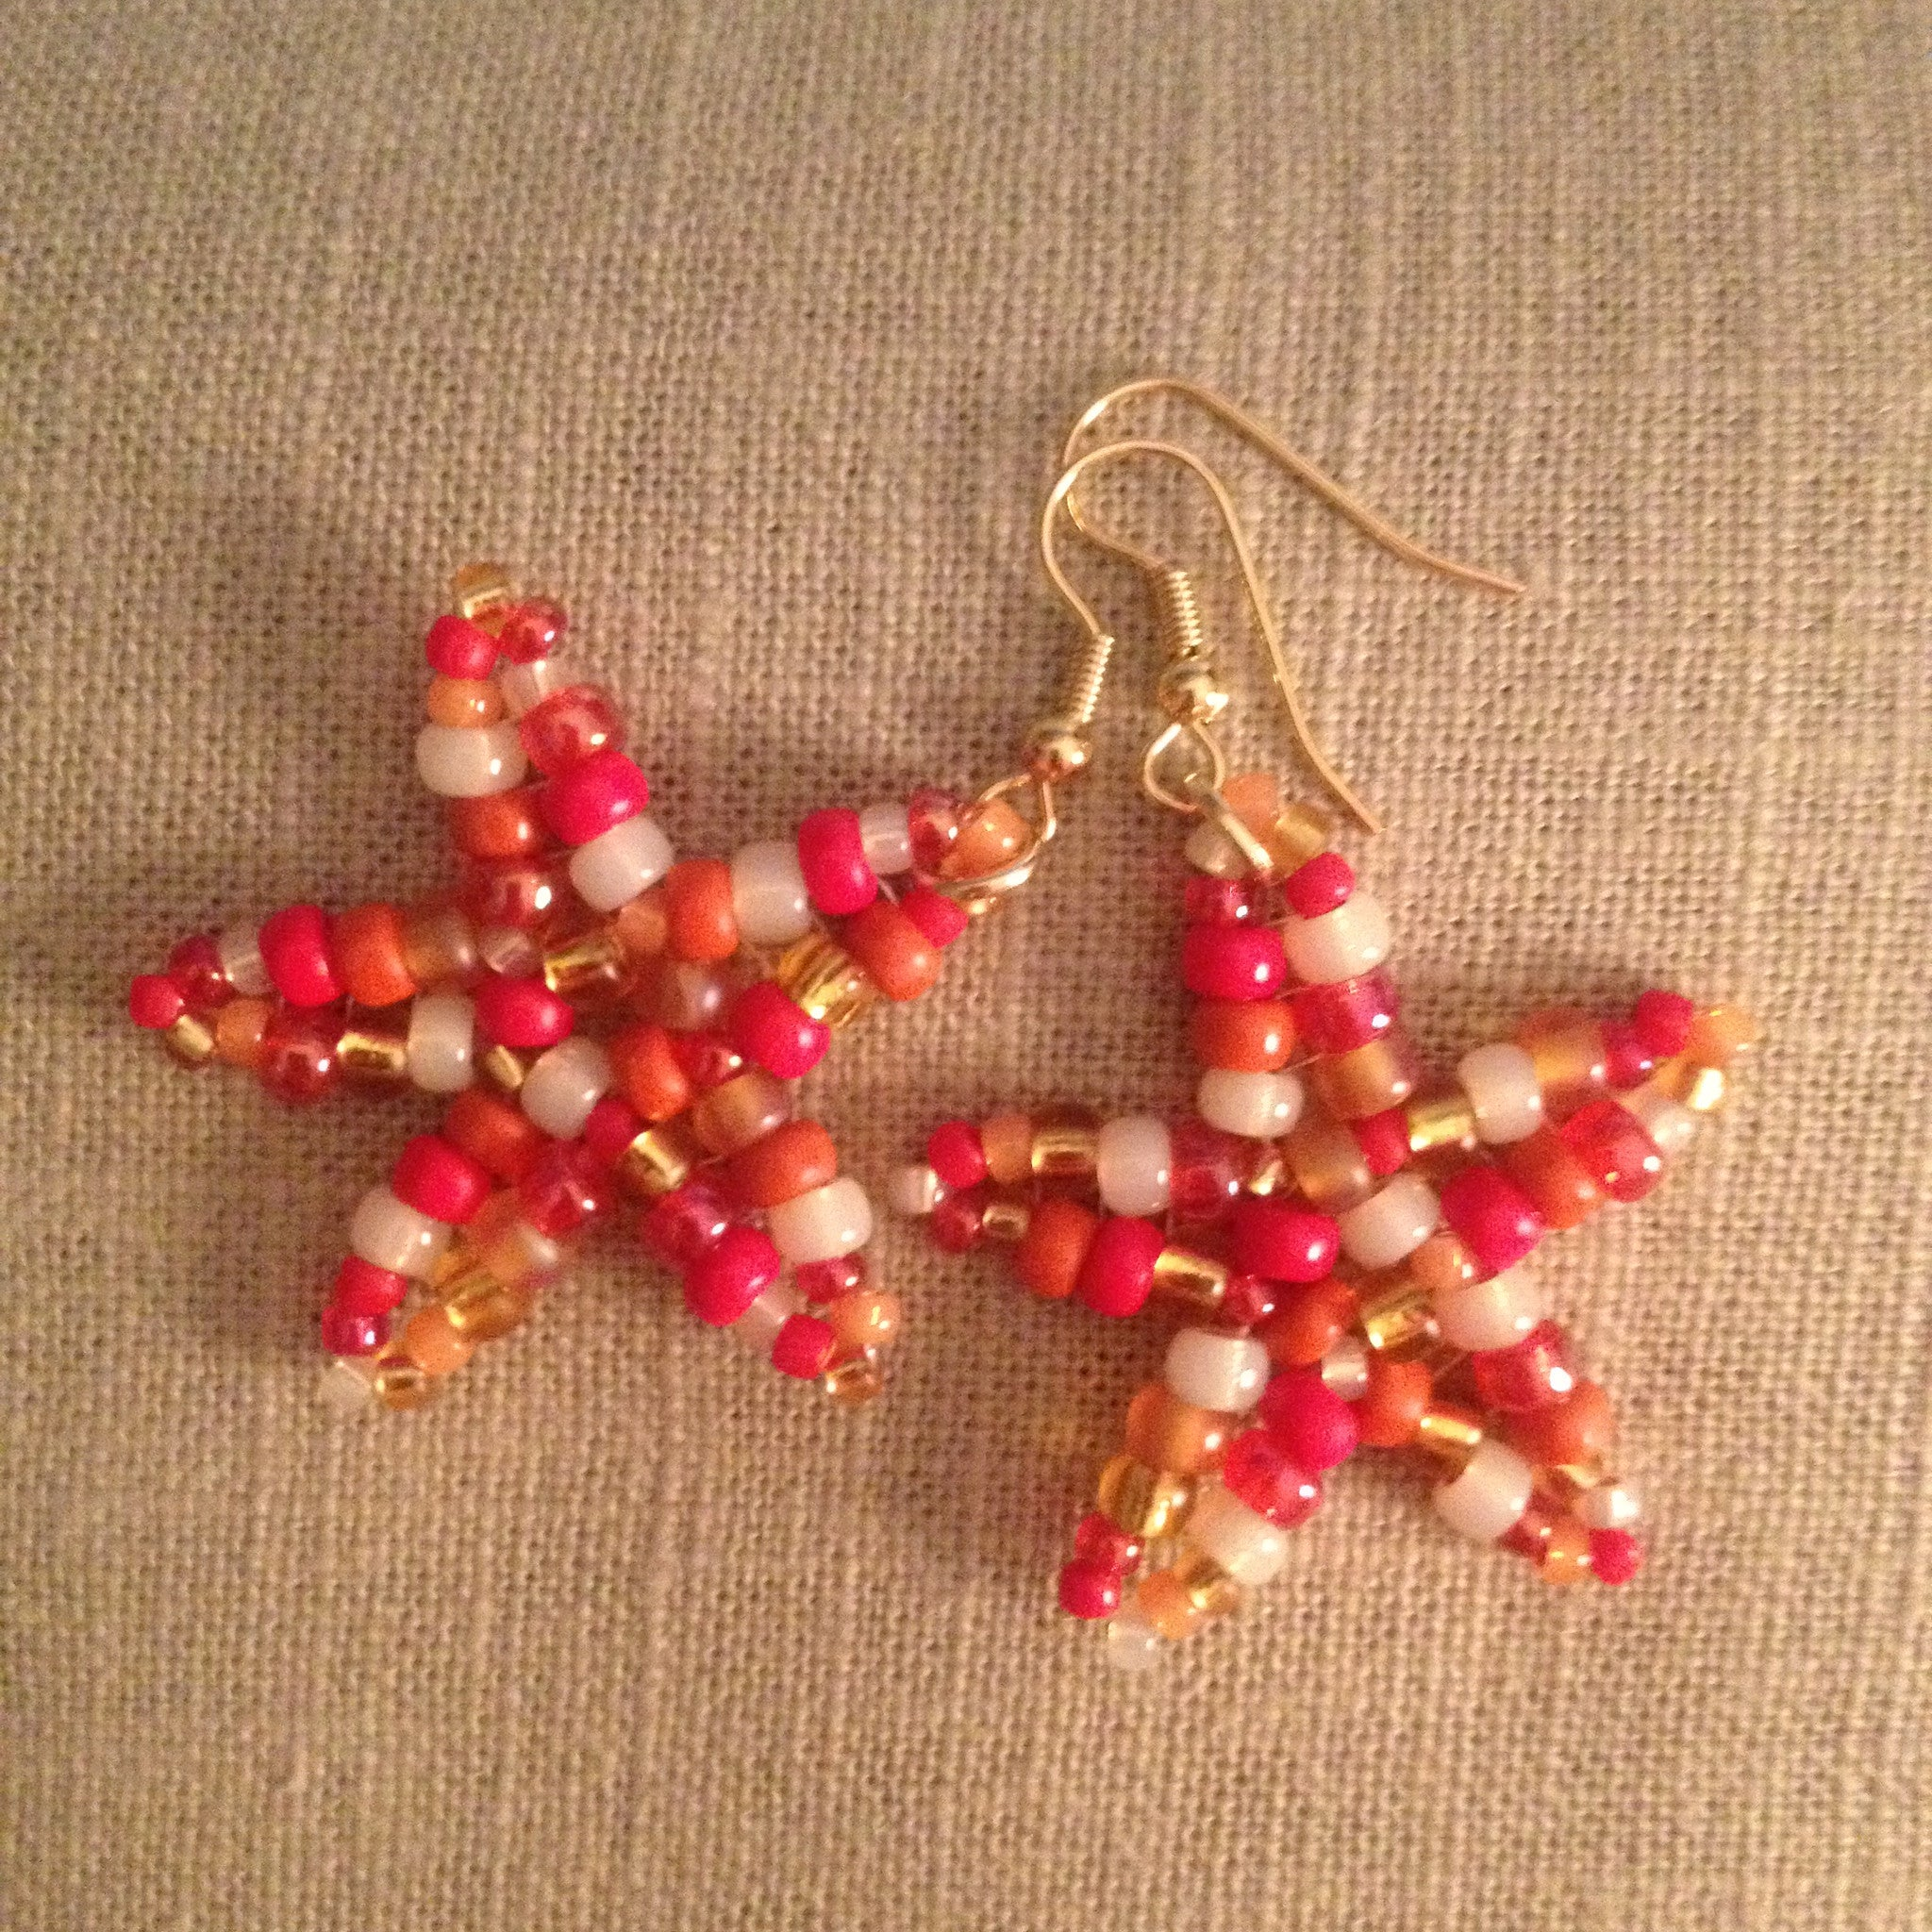 Starfish beaded handmade earrings resort cruise wear beachy fun style casual